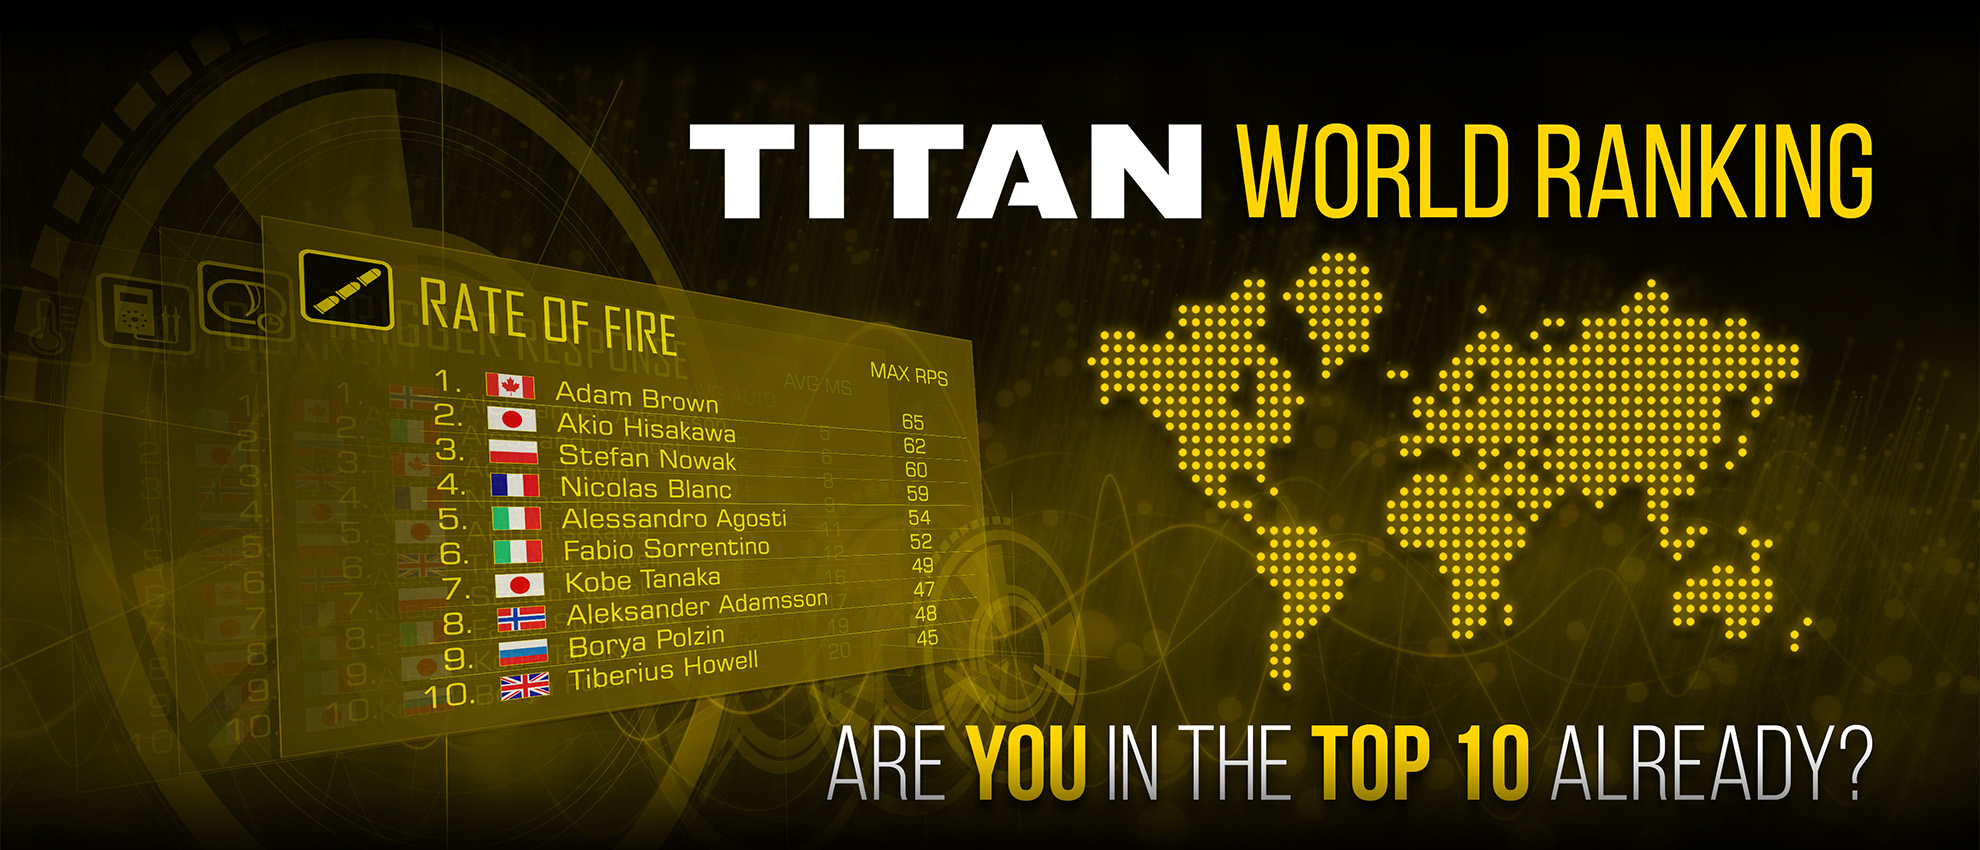 TITAN World Rankings__main